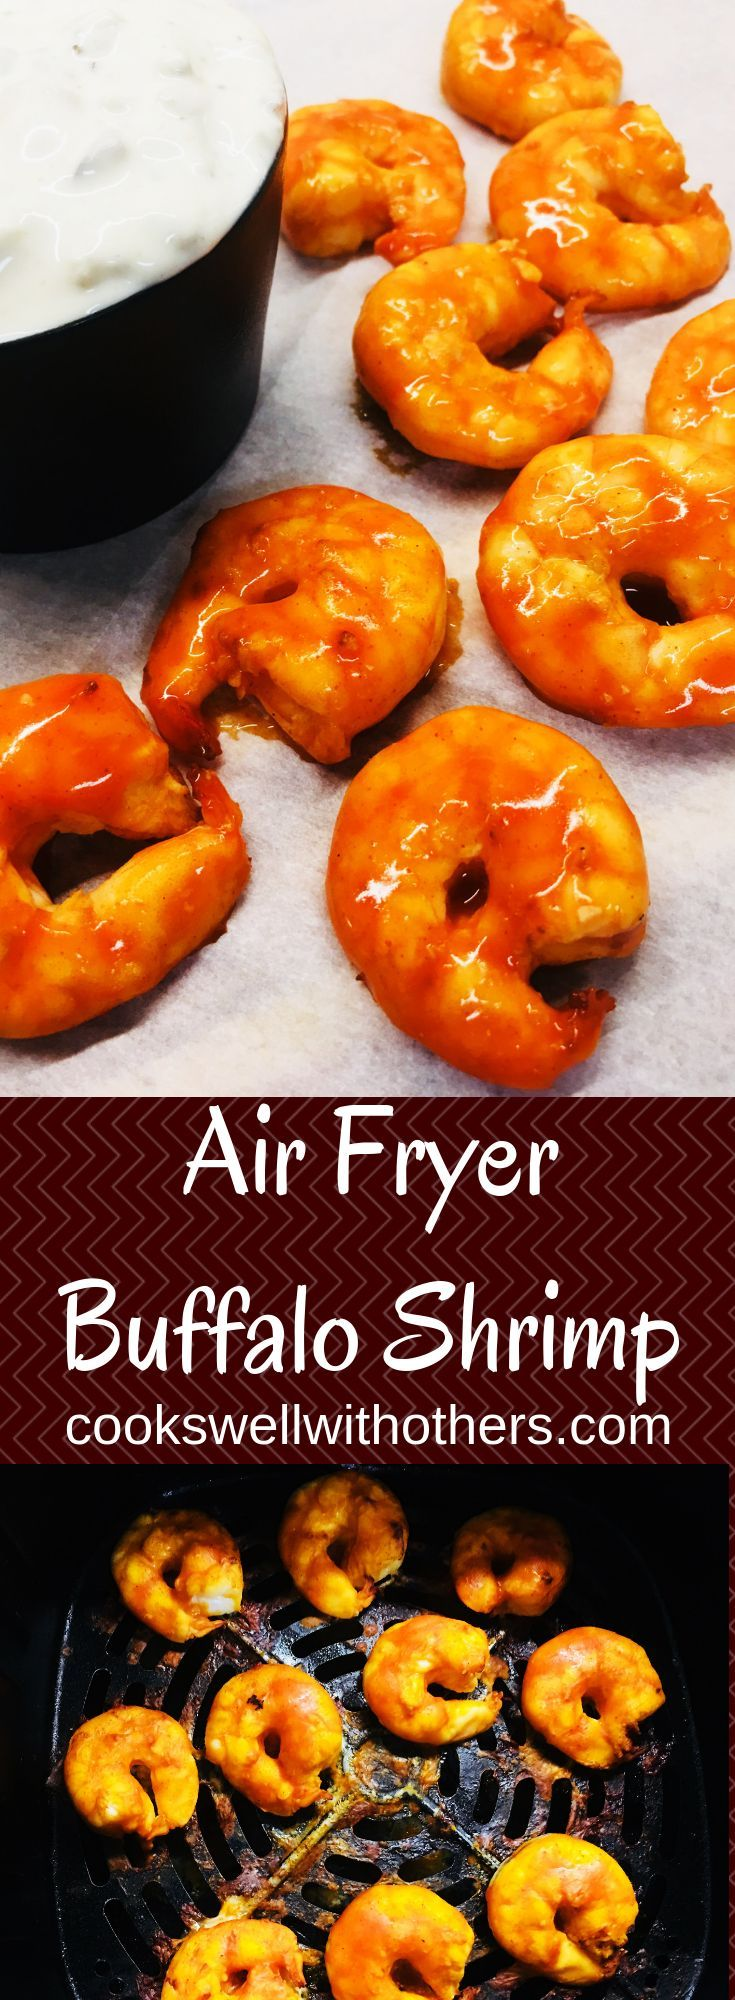 Air Fryer Buffalo Shrimp #buffaloshrimp